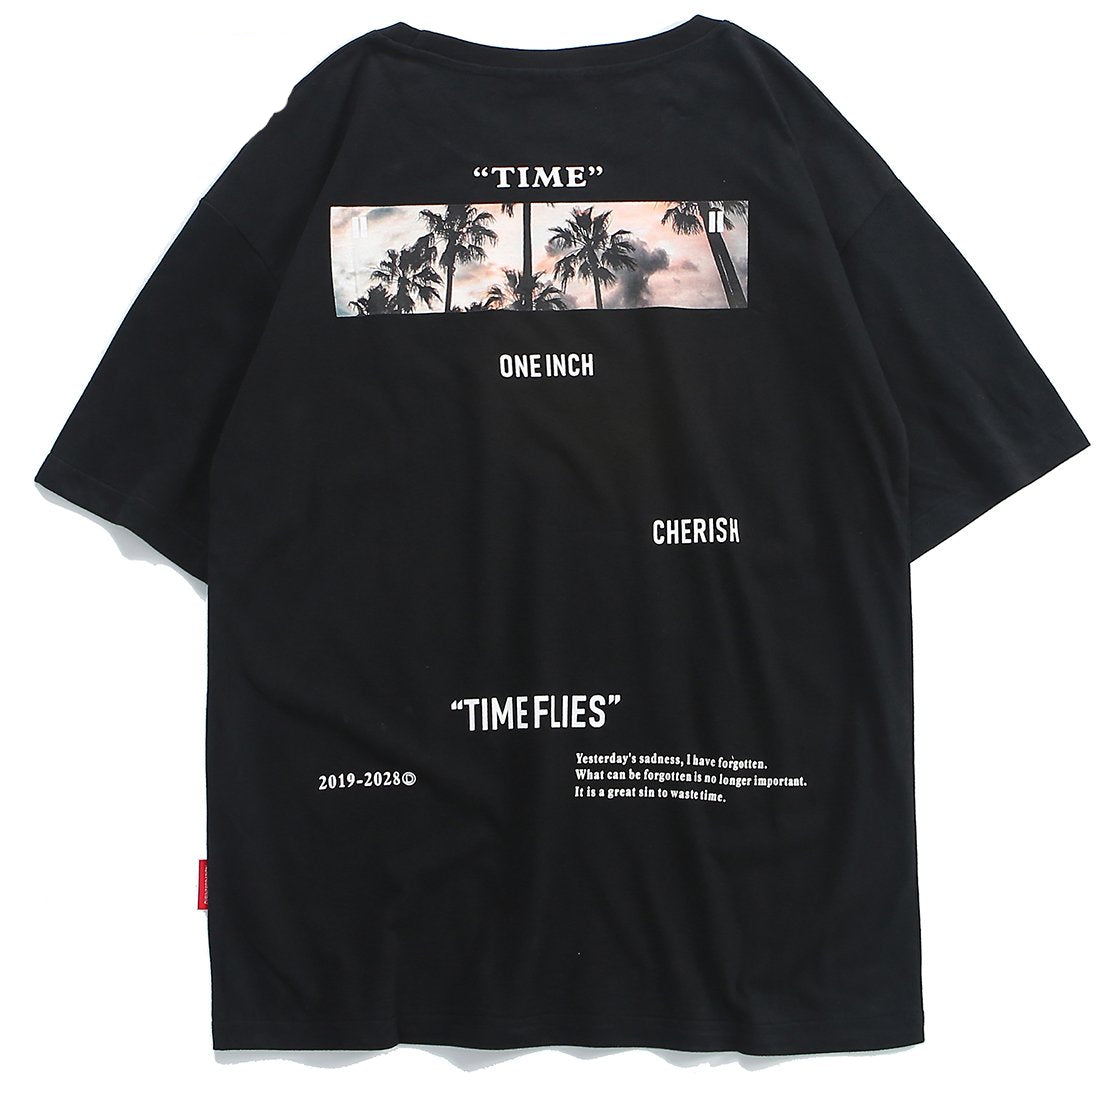 ContraX 'Time' Tee